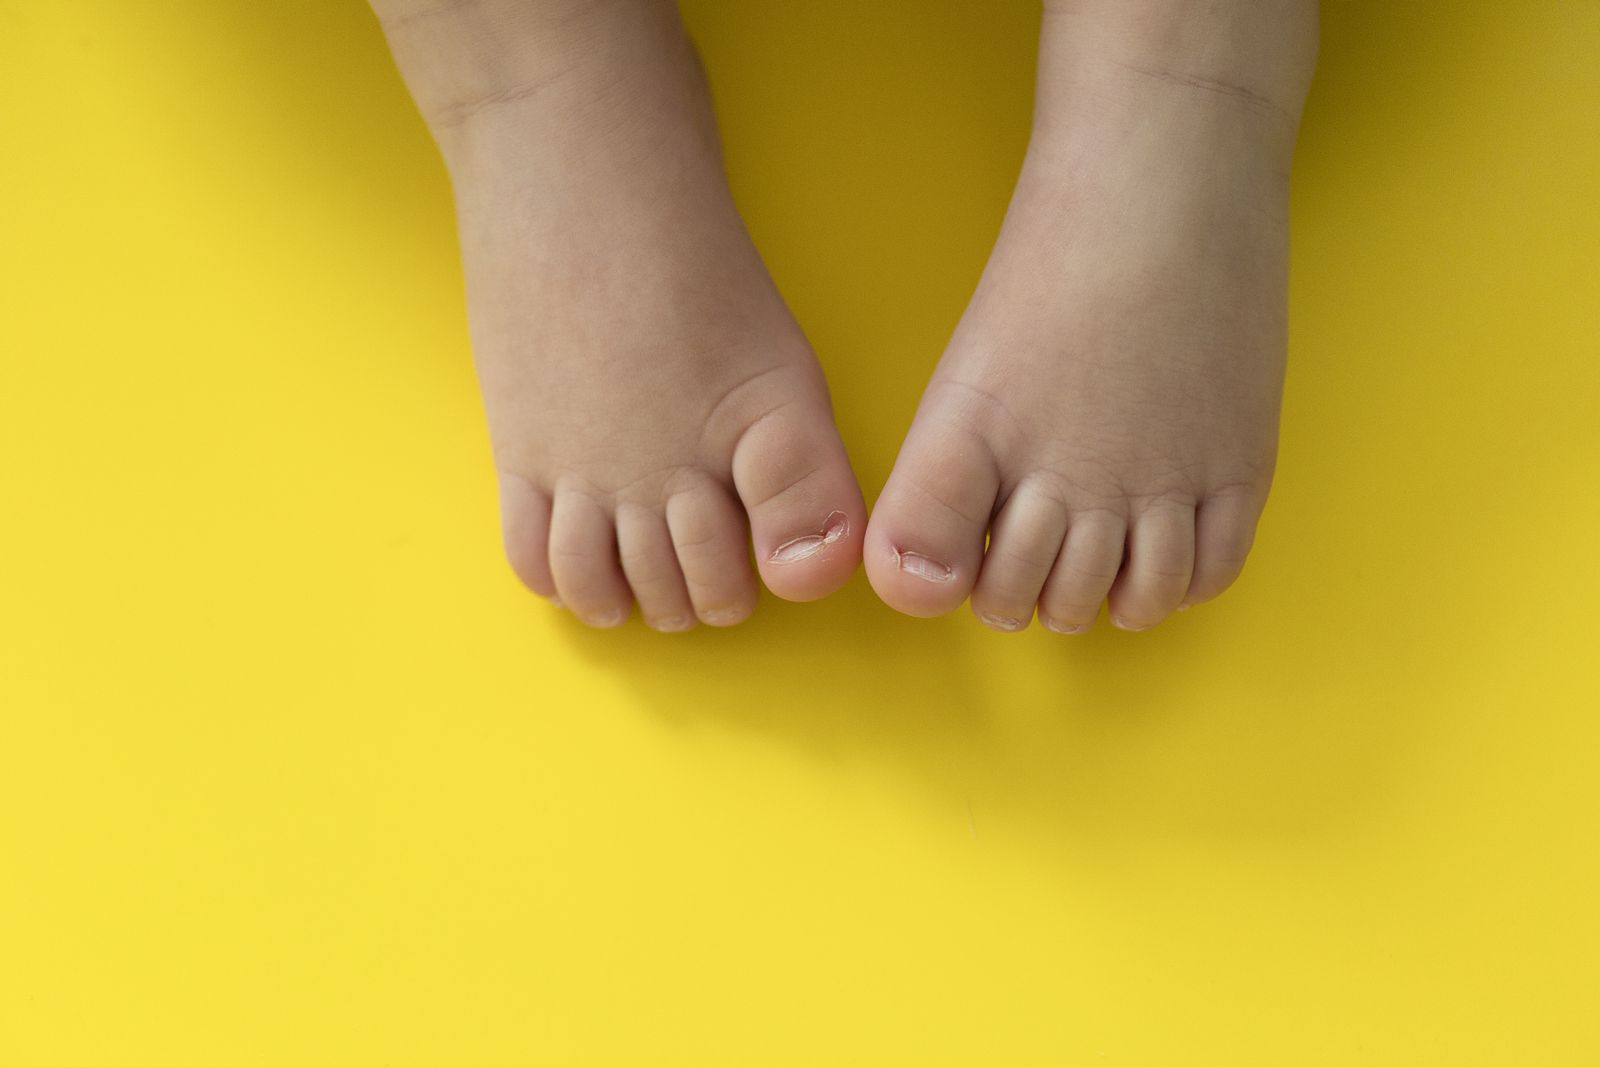 kids are at high risk for ingrown toenail. So preventative care is crucial